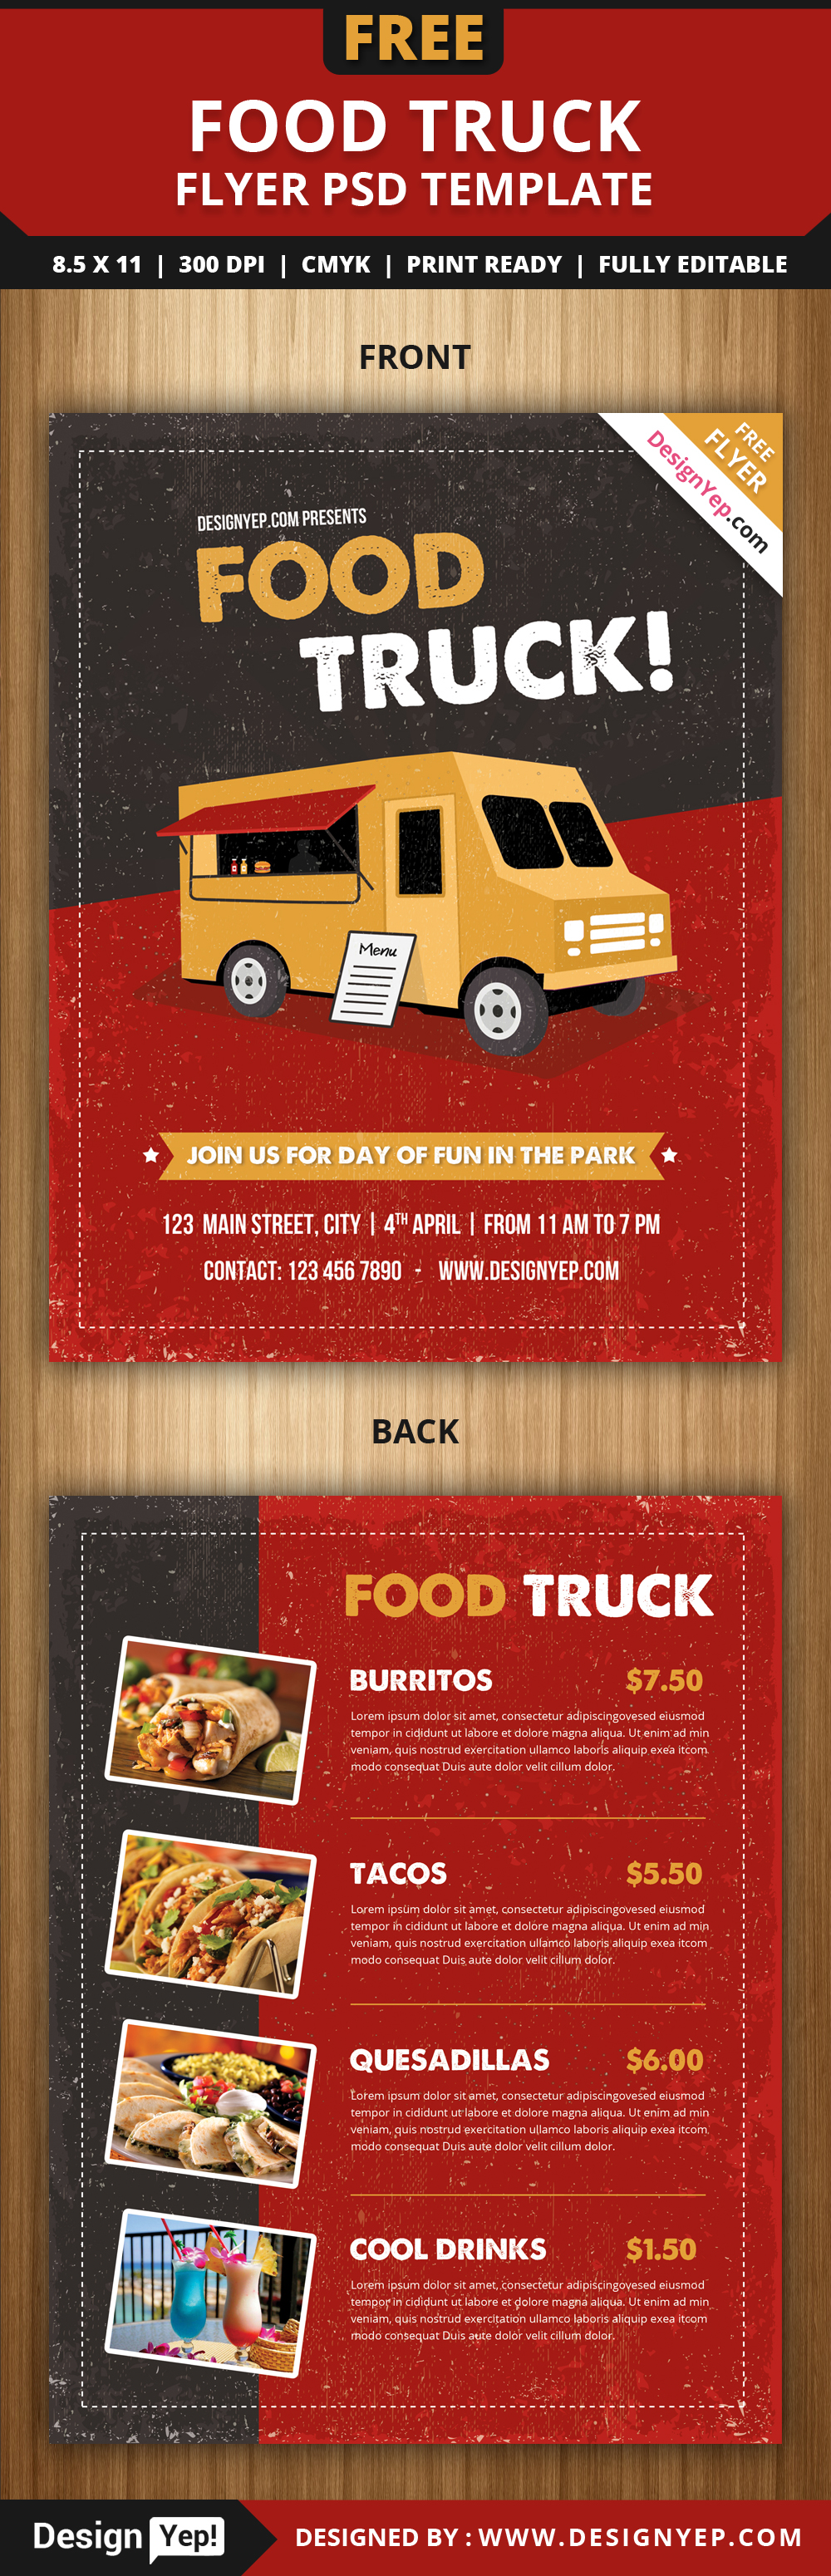 Free Food Truck Flyer PSD Template On Behance - Food truck flyer template